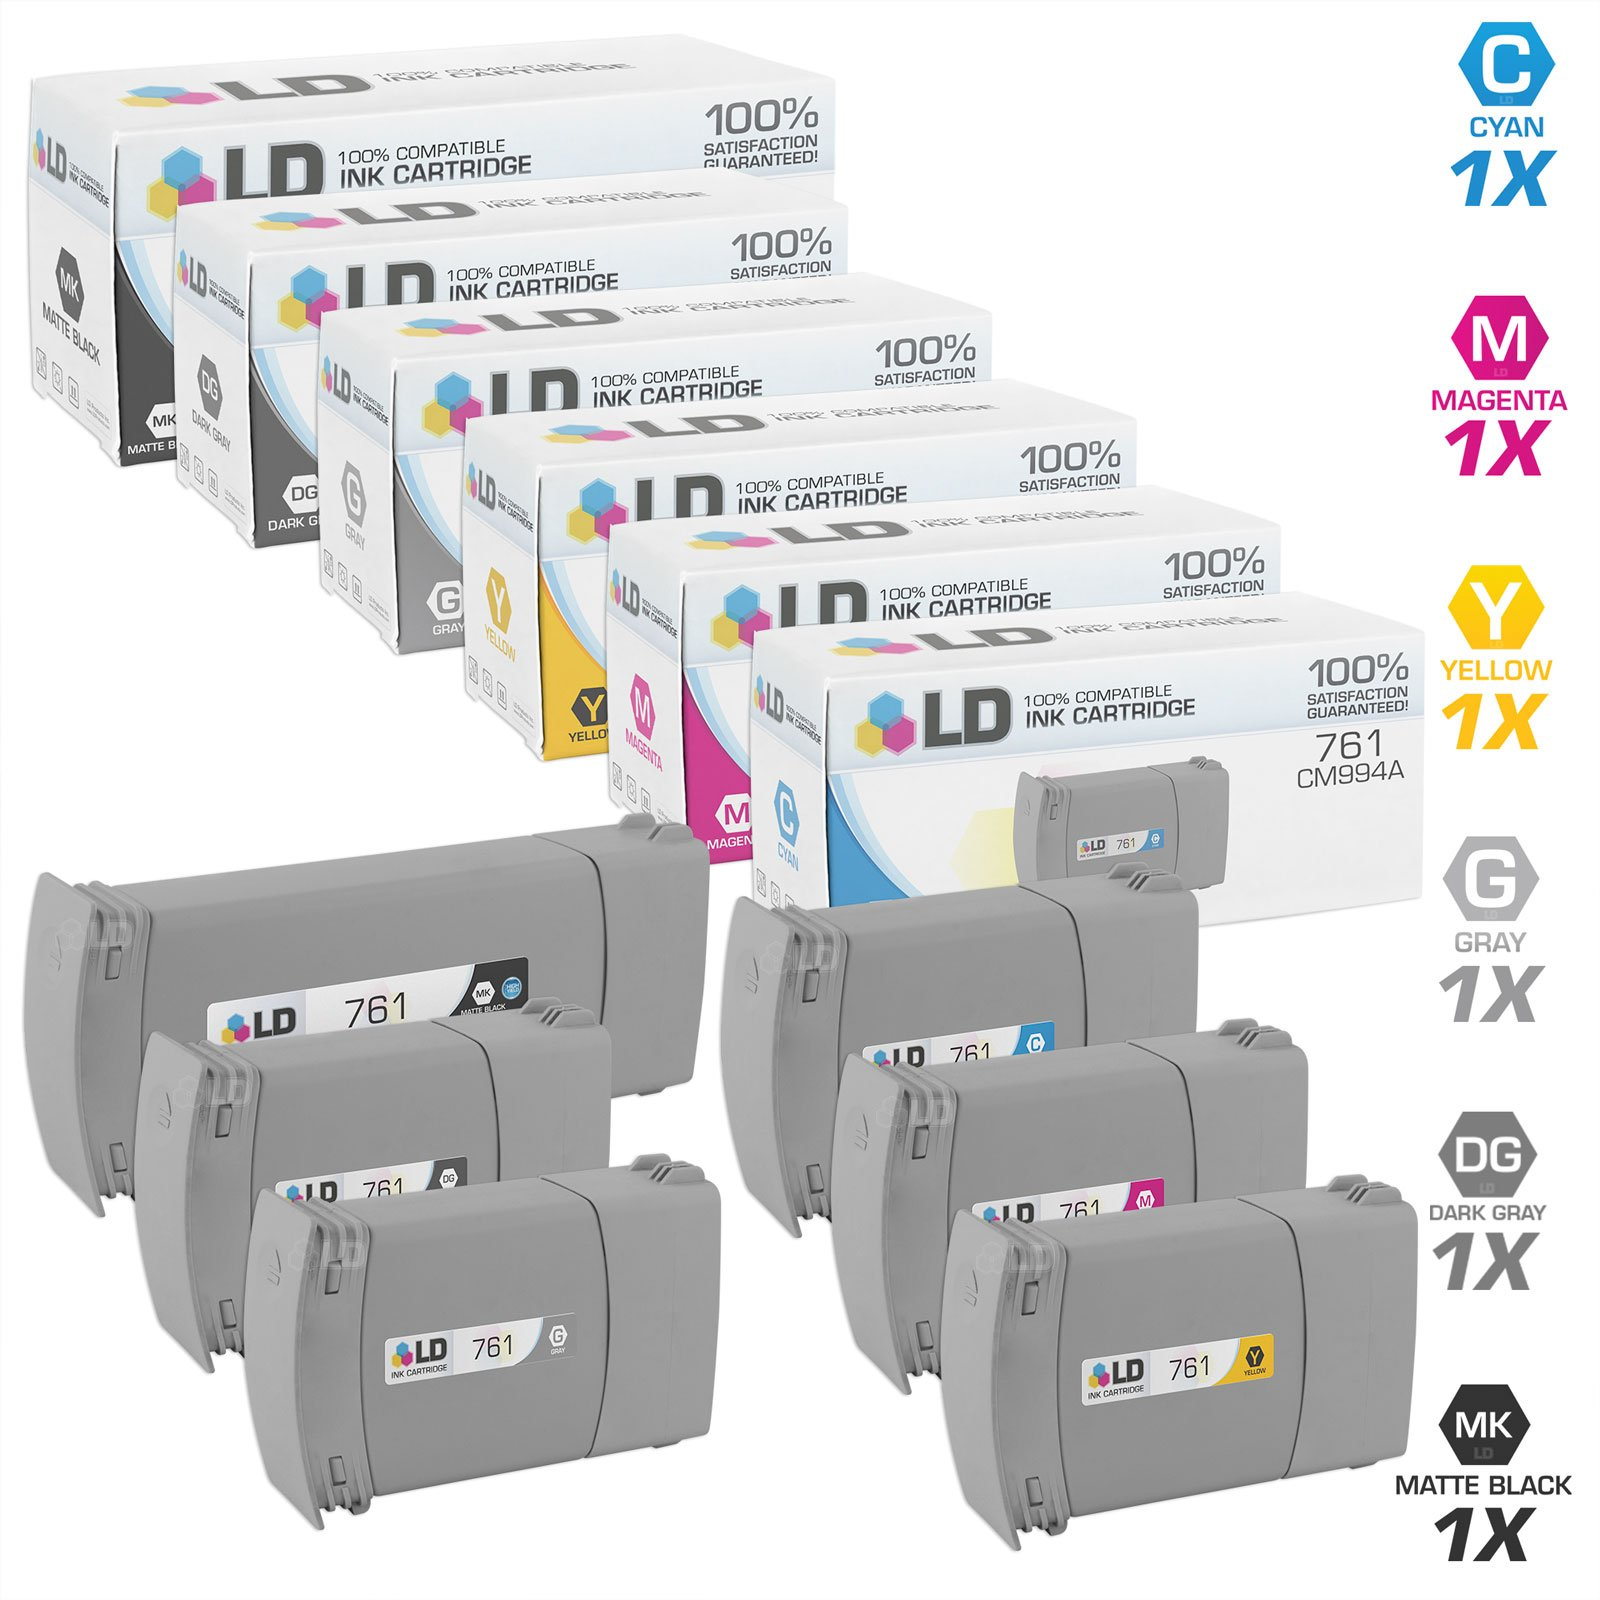 LD © Remanufactured Replacements for HP 761 Set of 6 Ink Cartridges: 1 CM997A High Yield Black, 1 CM992A Cyan, 1 CM993A Magenta, 1 CM994A Yellow, 1 CM995A Gray, and 1 CM996A Dark Gray